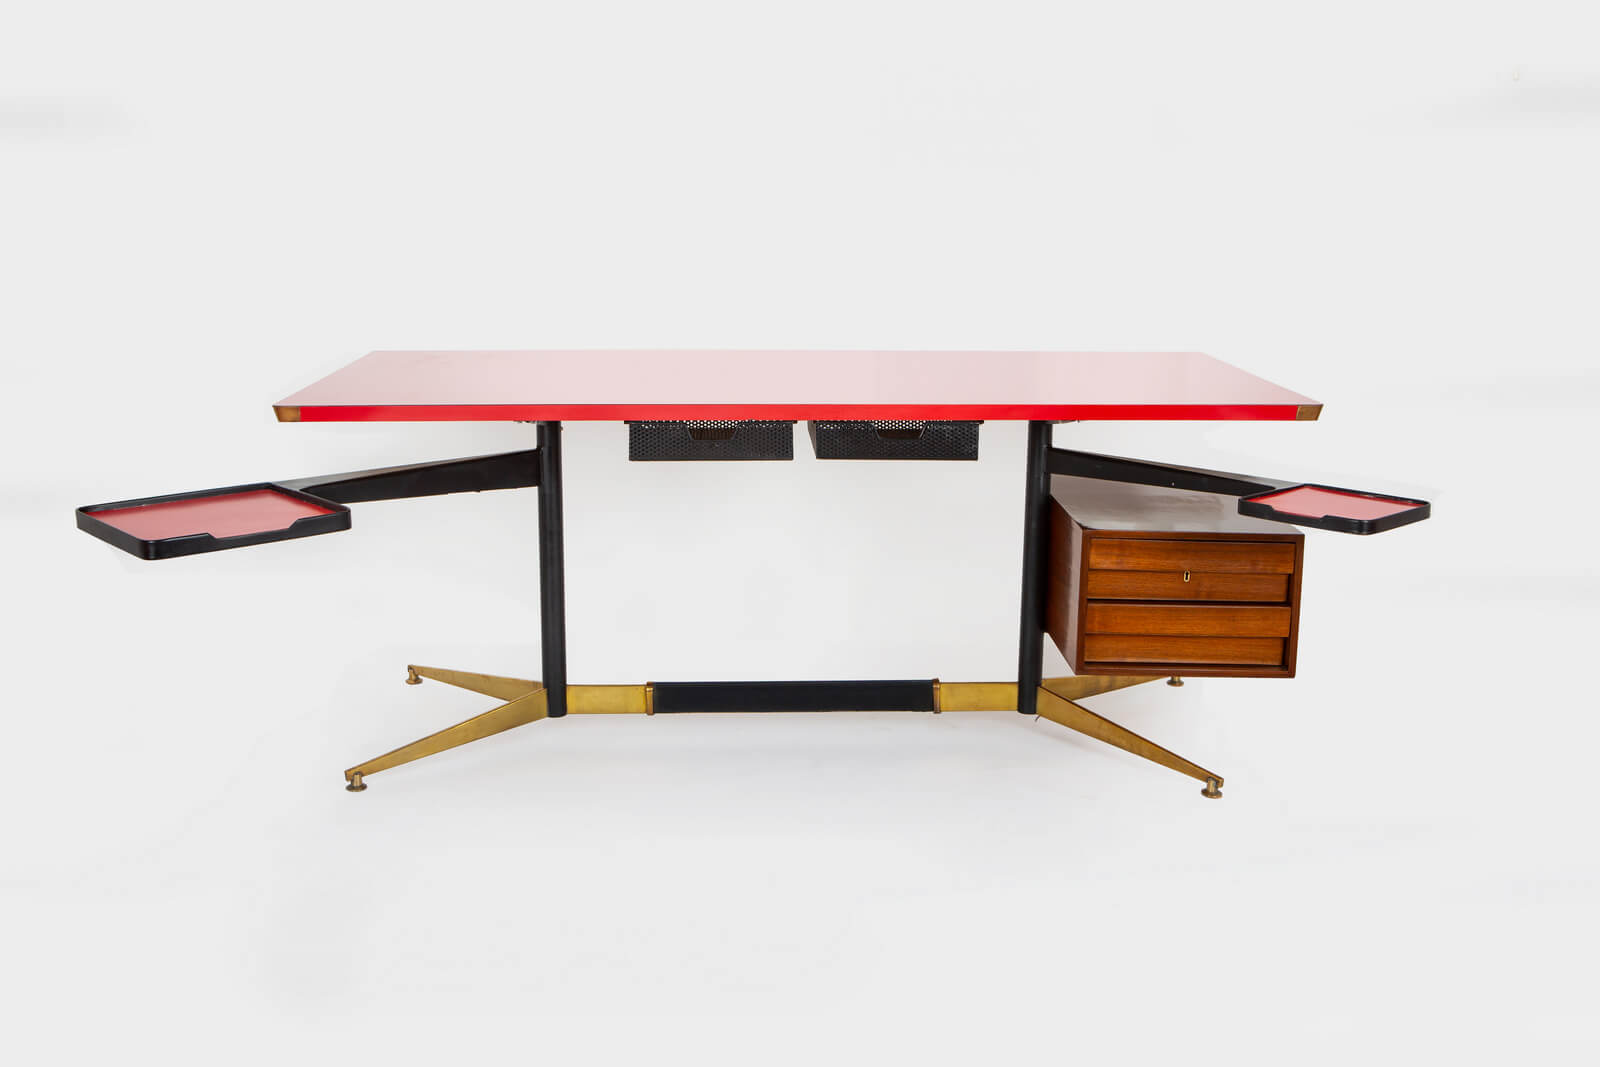 Table by Gio Ponti for sale